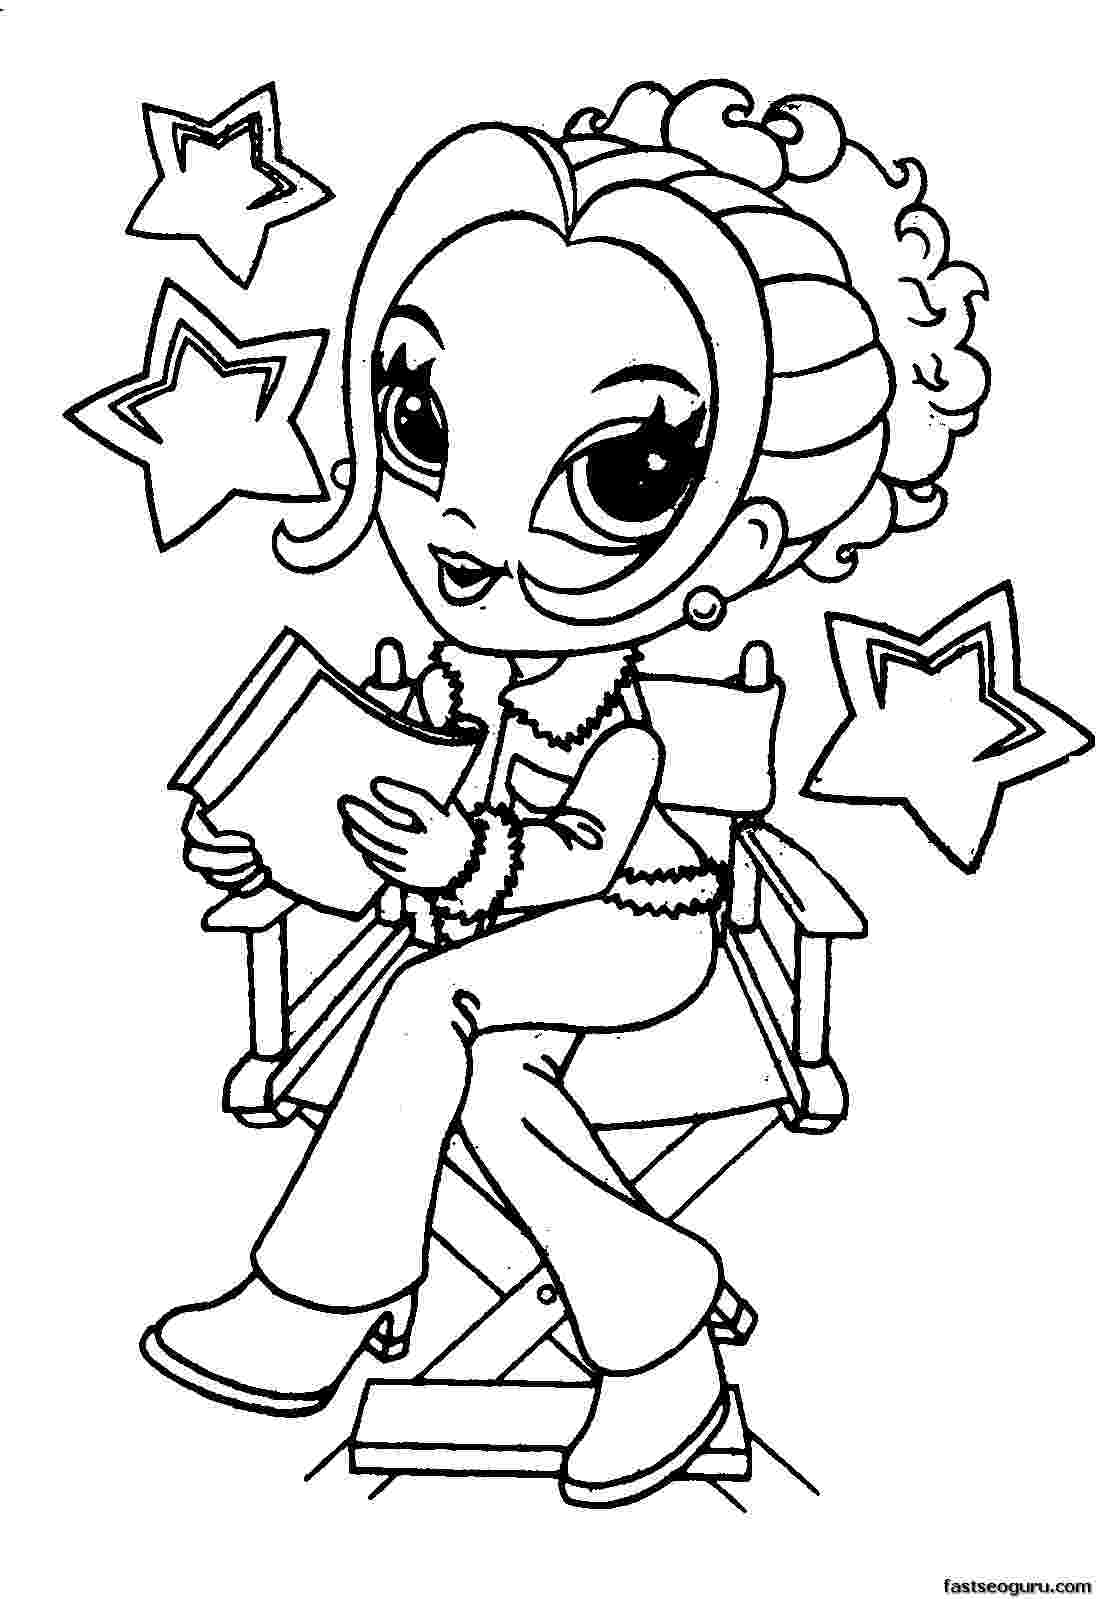 free colouring pages for girls free coloring pages for girls and boys 123 kids fun apps for girls free pages colouring